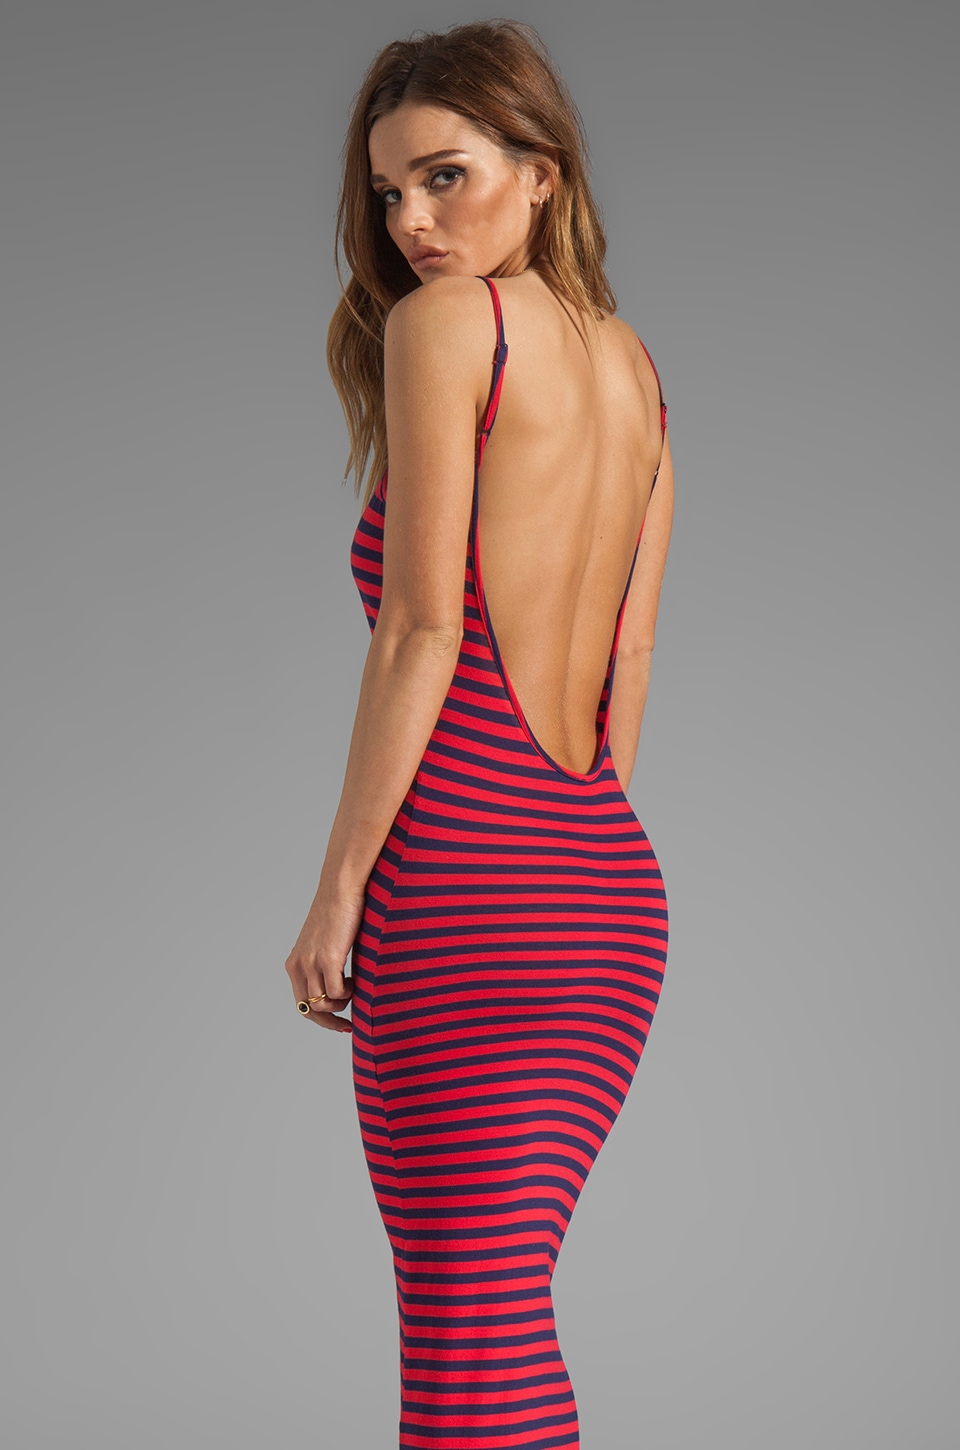 Bobi Stripe Low Back Dress in Yacht/Bali